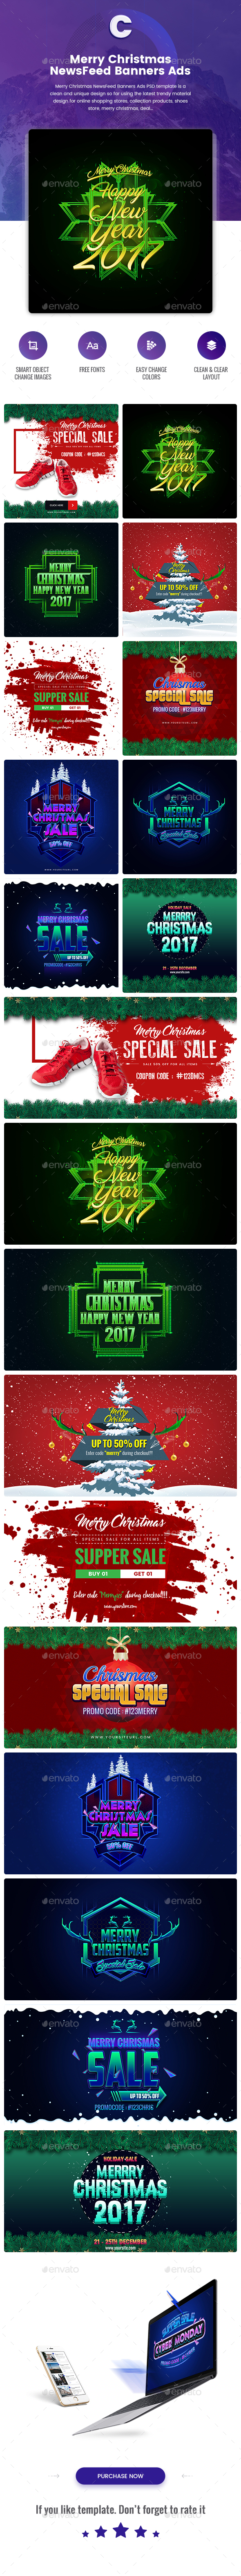 Merry Christmas NewsFeed Banners Ads - 20 PSD [02 Size Each] - Banners & Ads Web Elements